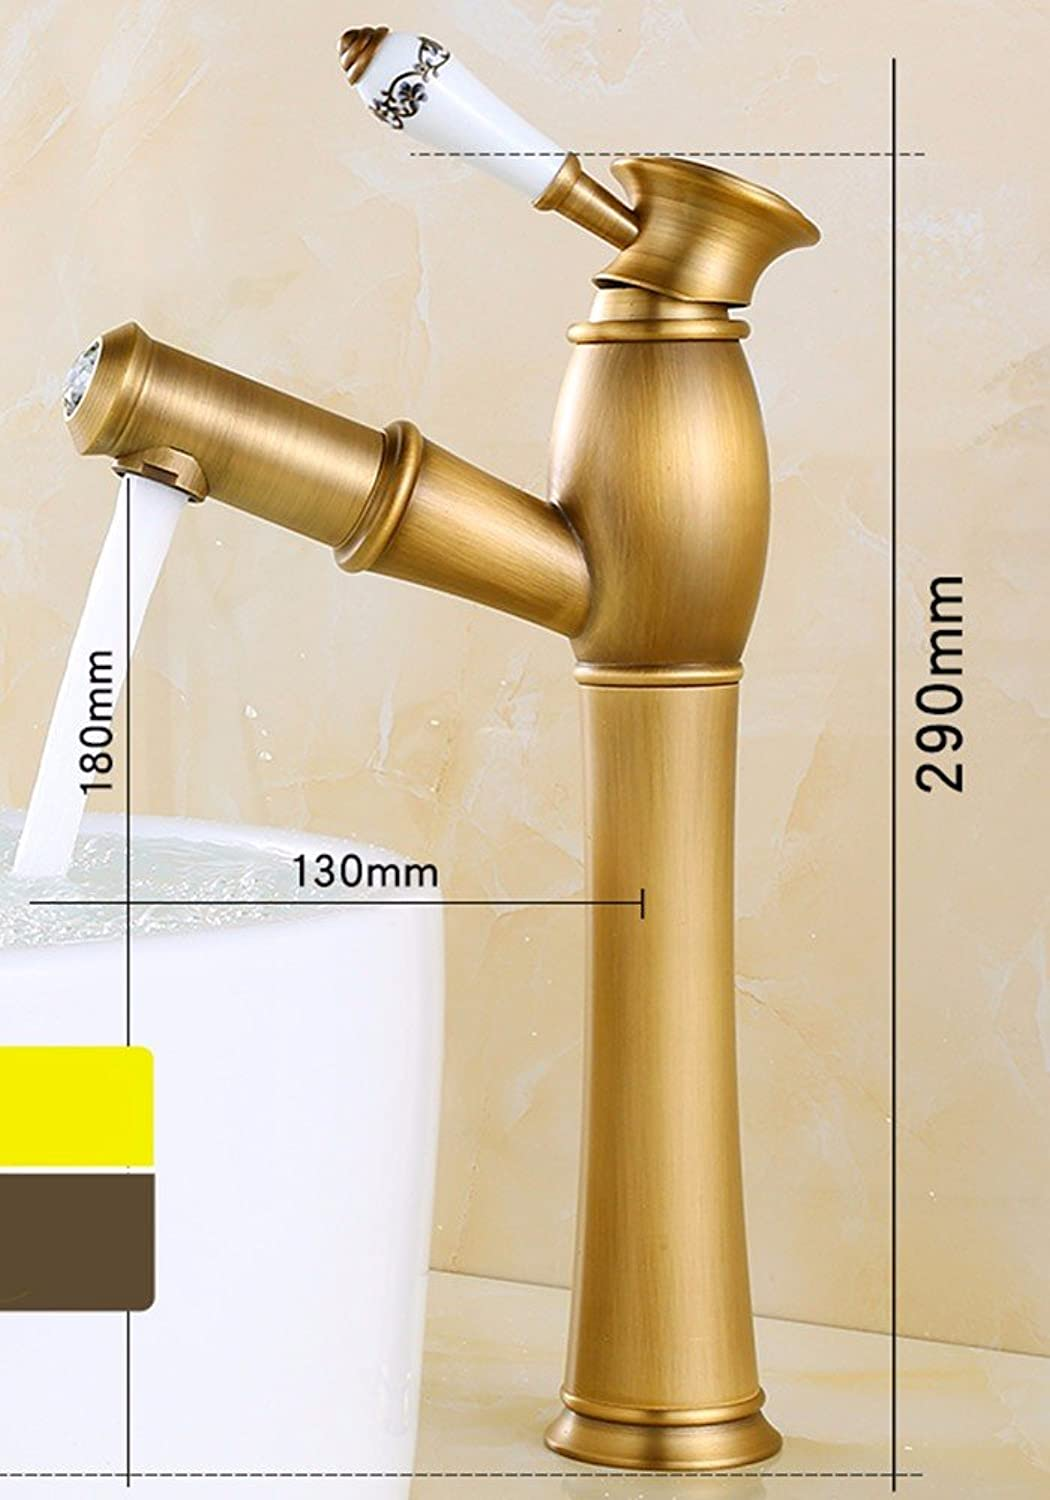 LSRHT Basin Taps Taps Taps Mixer Kitchen Sink Faucet retro style pulled hot and cold Faucets Bathroom accessories c833c1